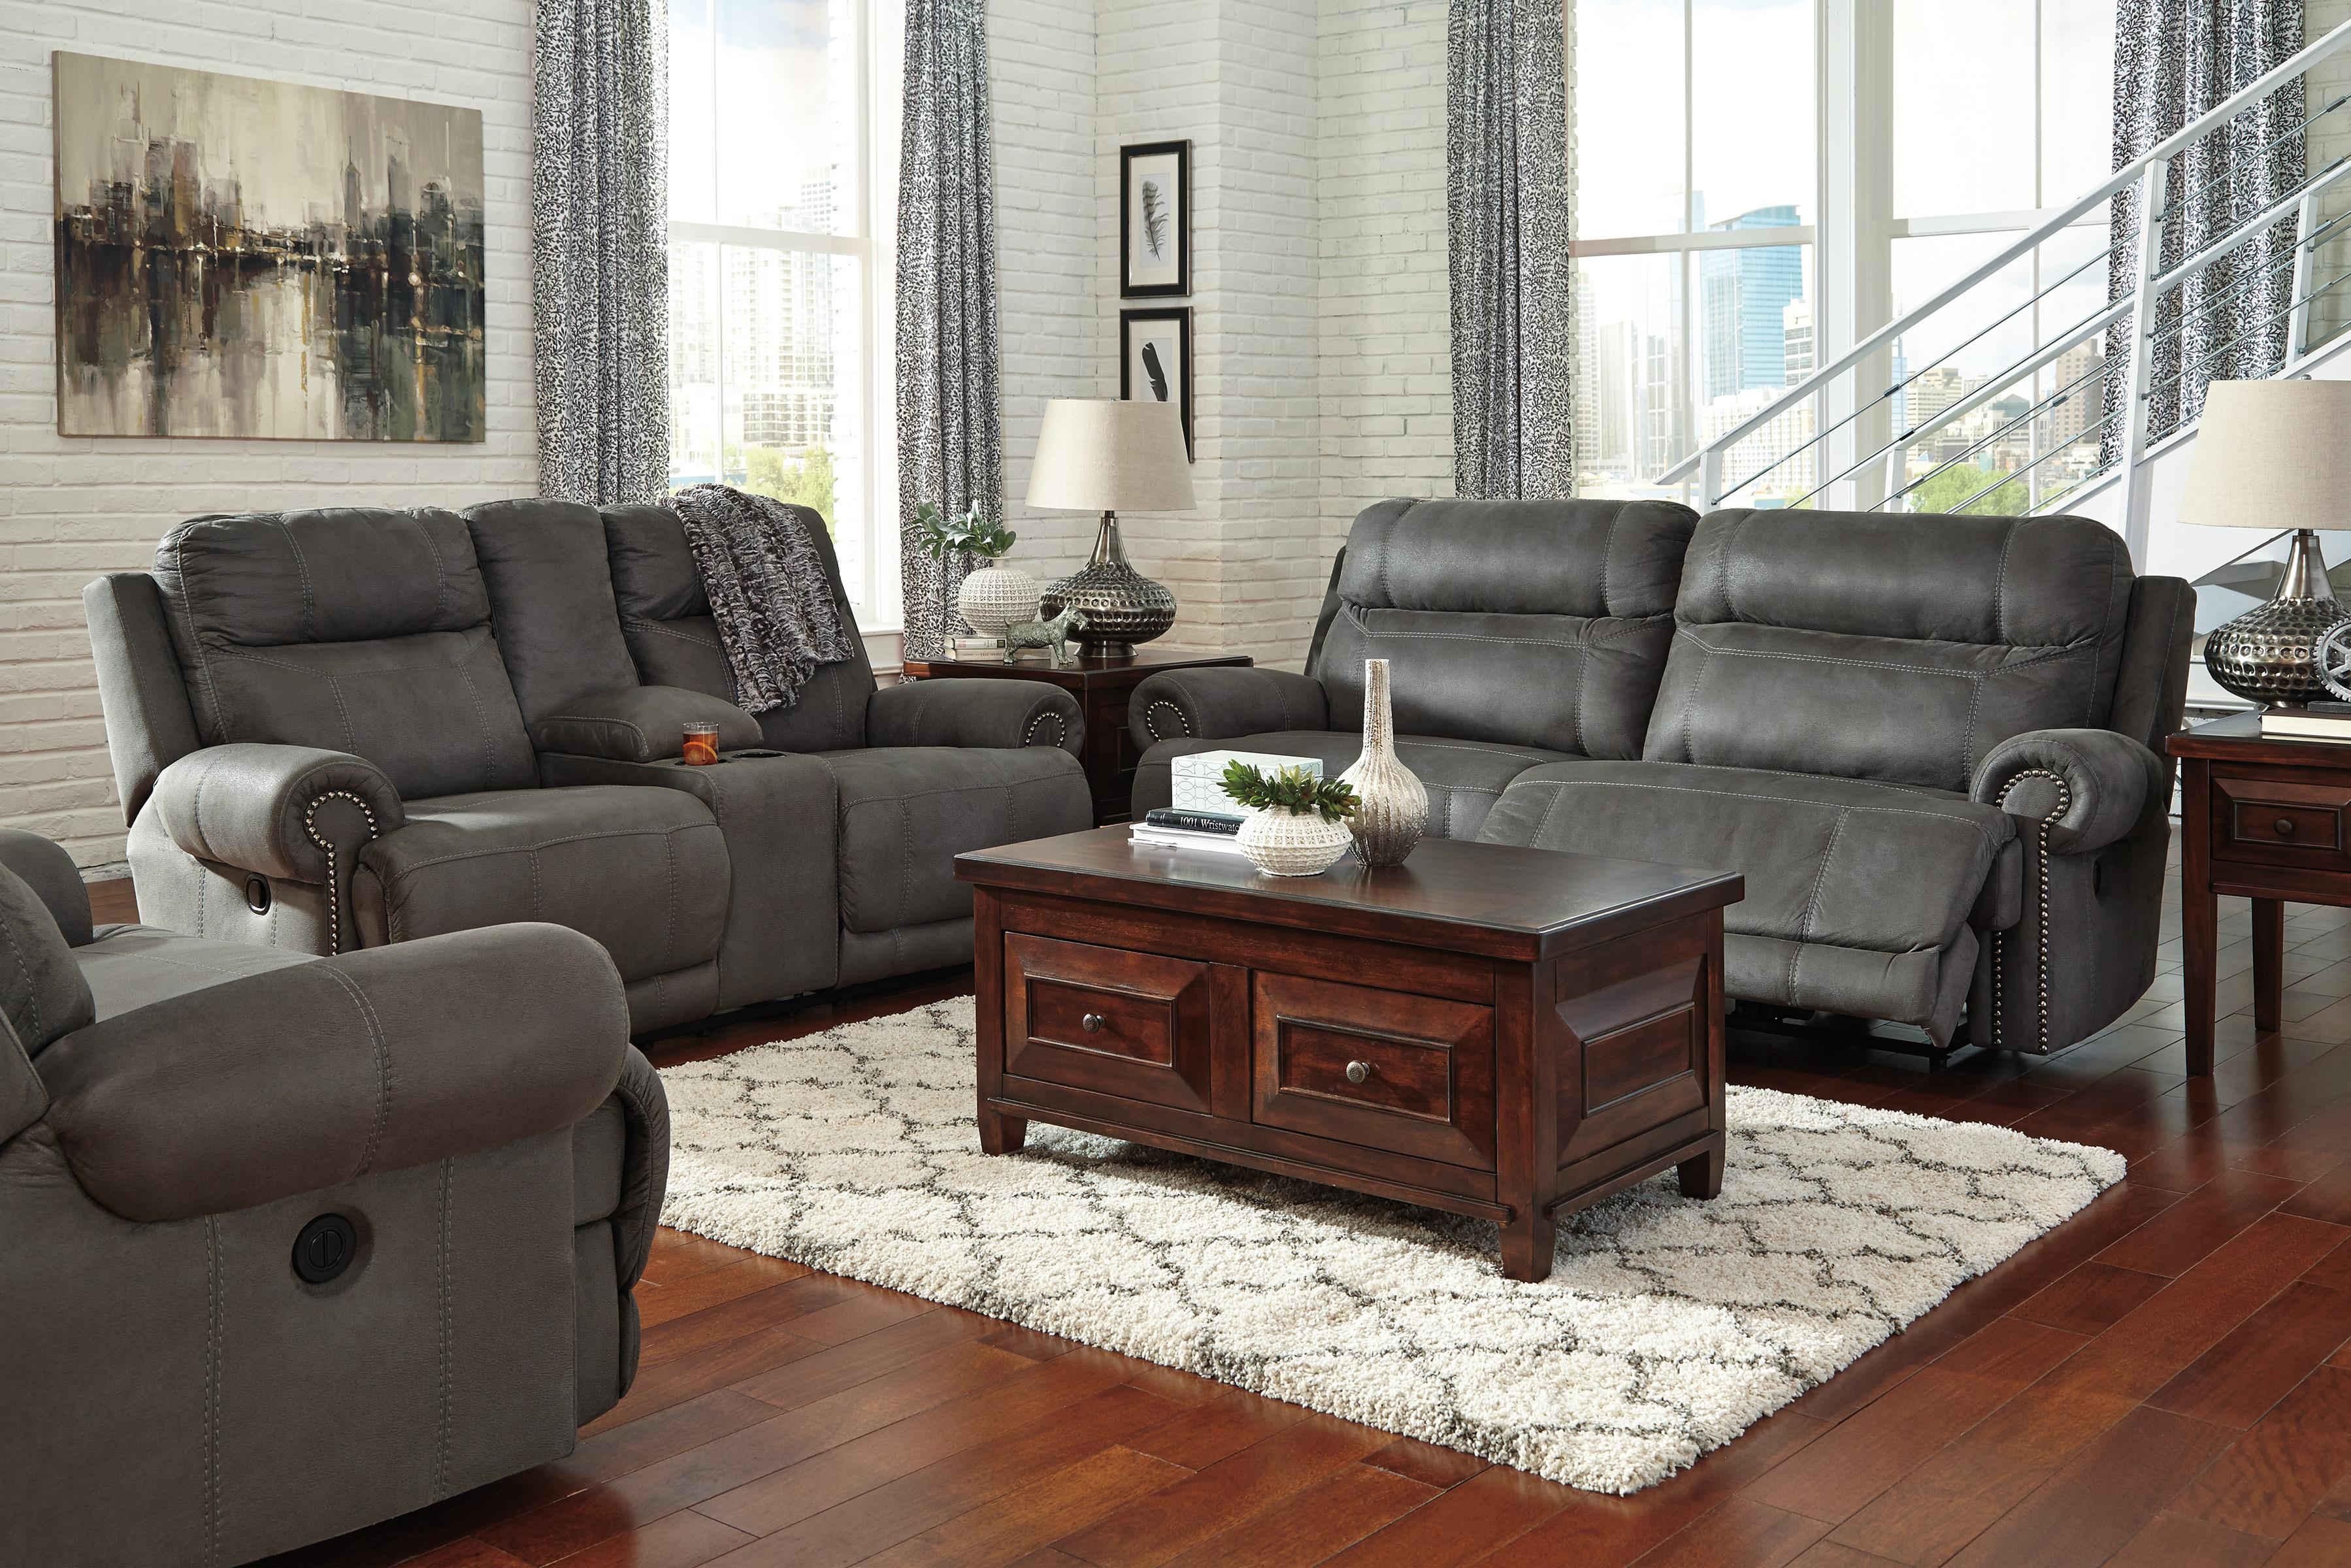 Austere - Gray Reclining Living Room Group by Signature Design by Ashley at Zak's Warehouse Clearance Center